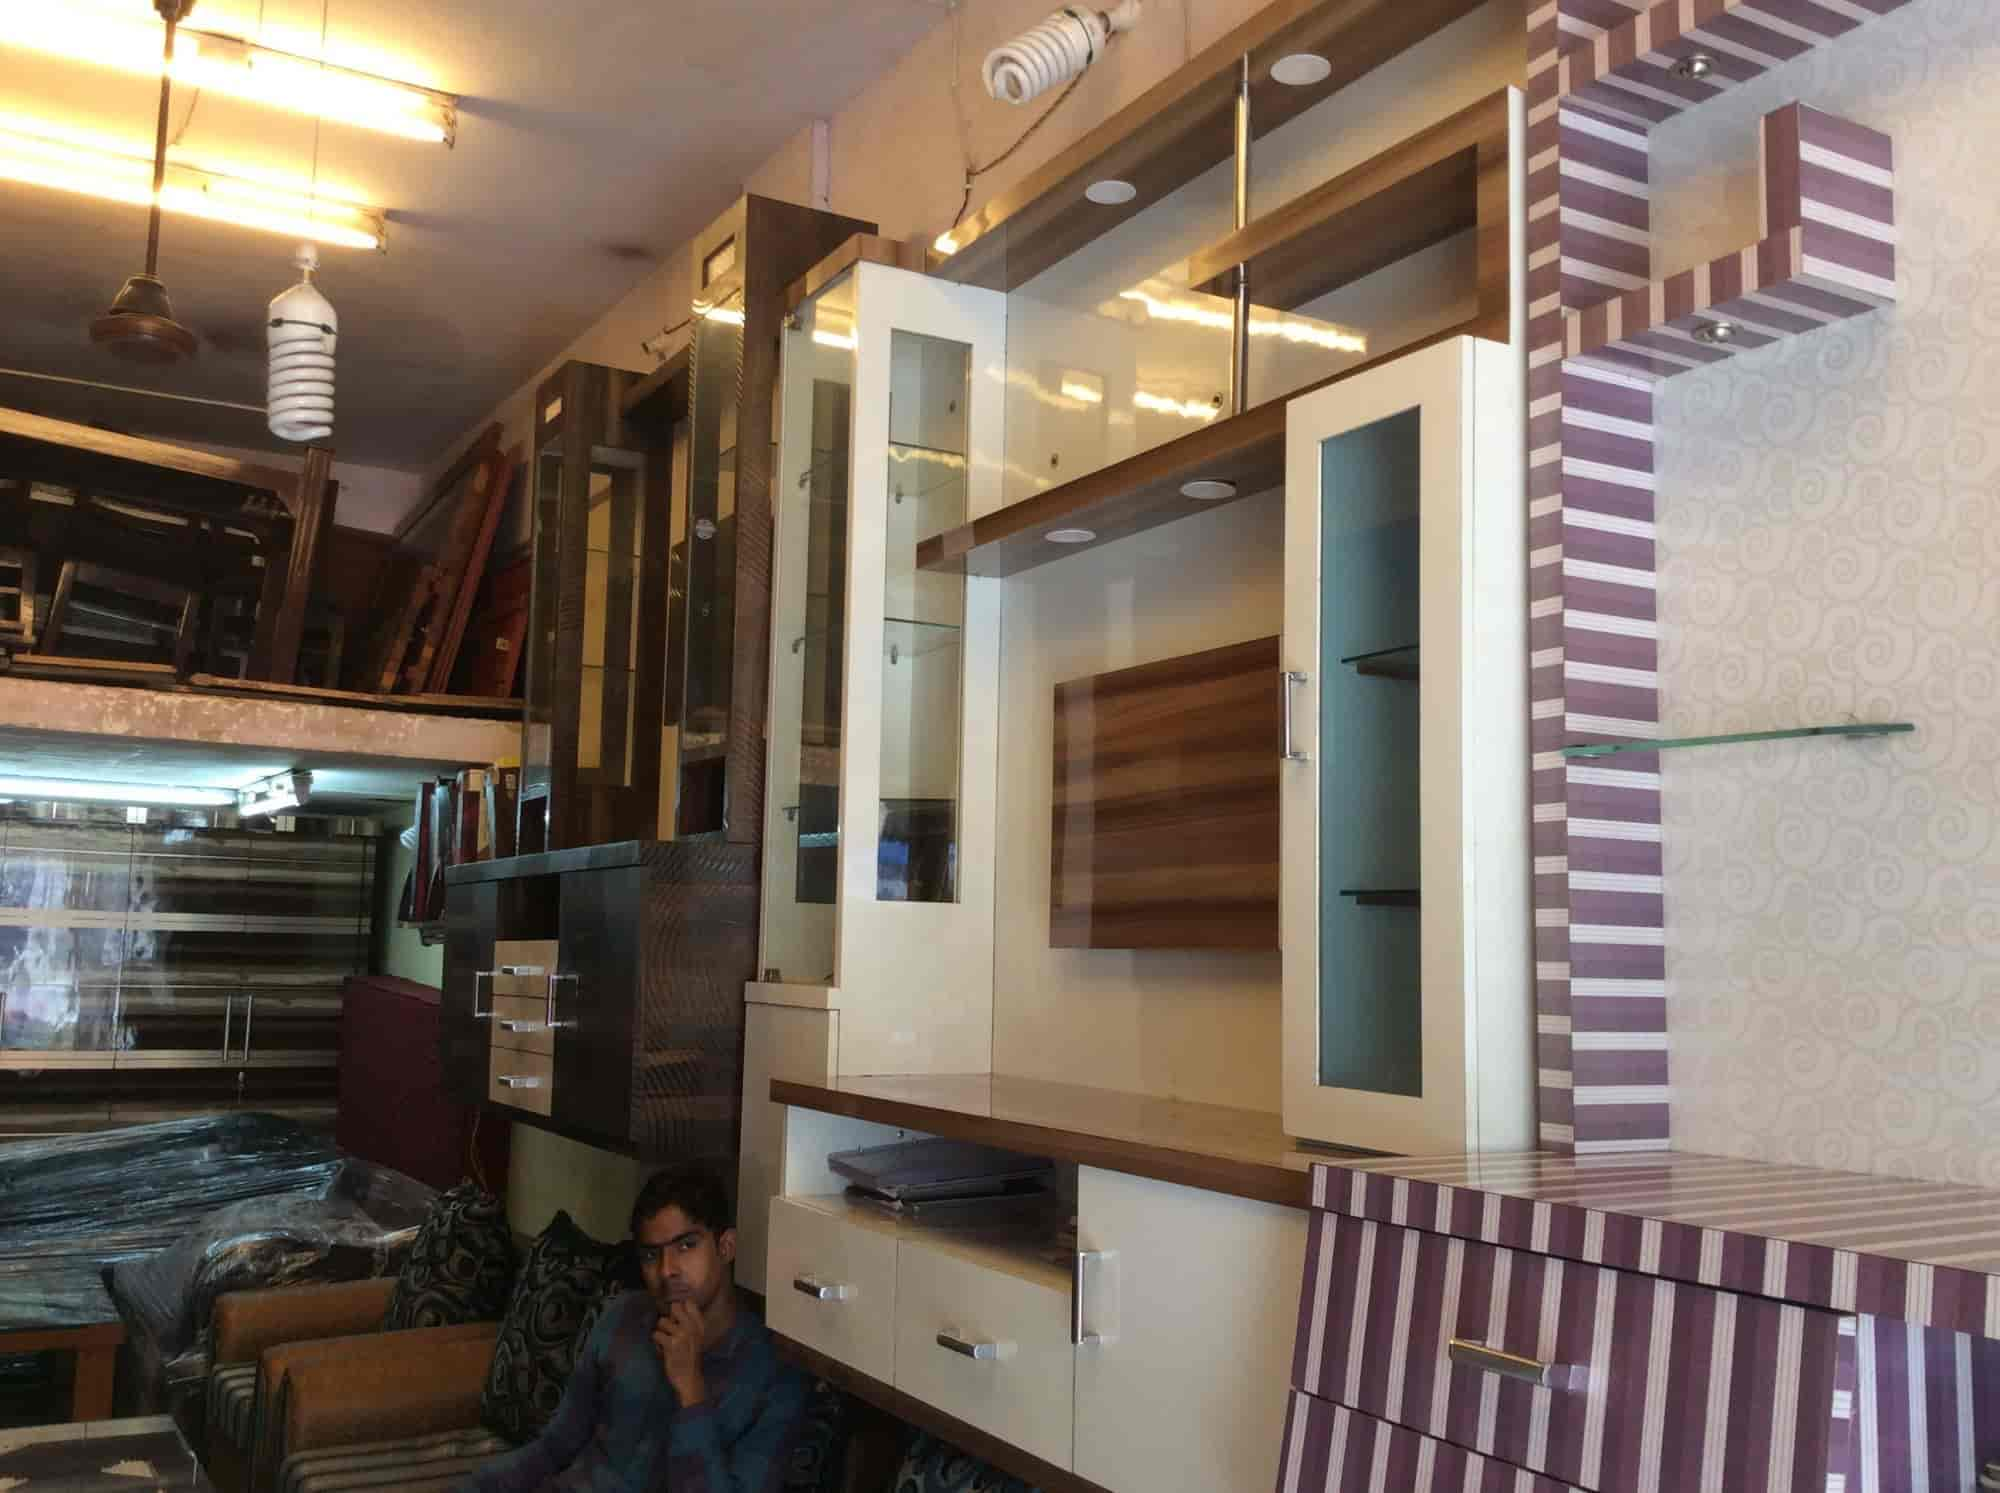 Better Home Furniture Photos  Seawoods  Mumbai   Carpenters. Better Home Furniture Photos  Seawoods  Mumbai  Pictures   Images